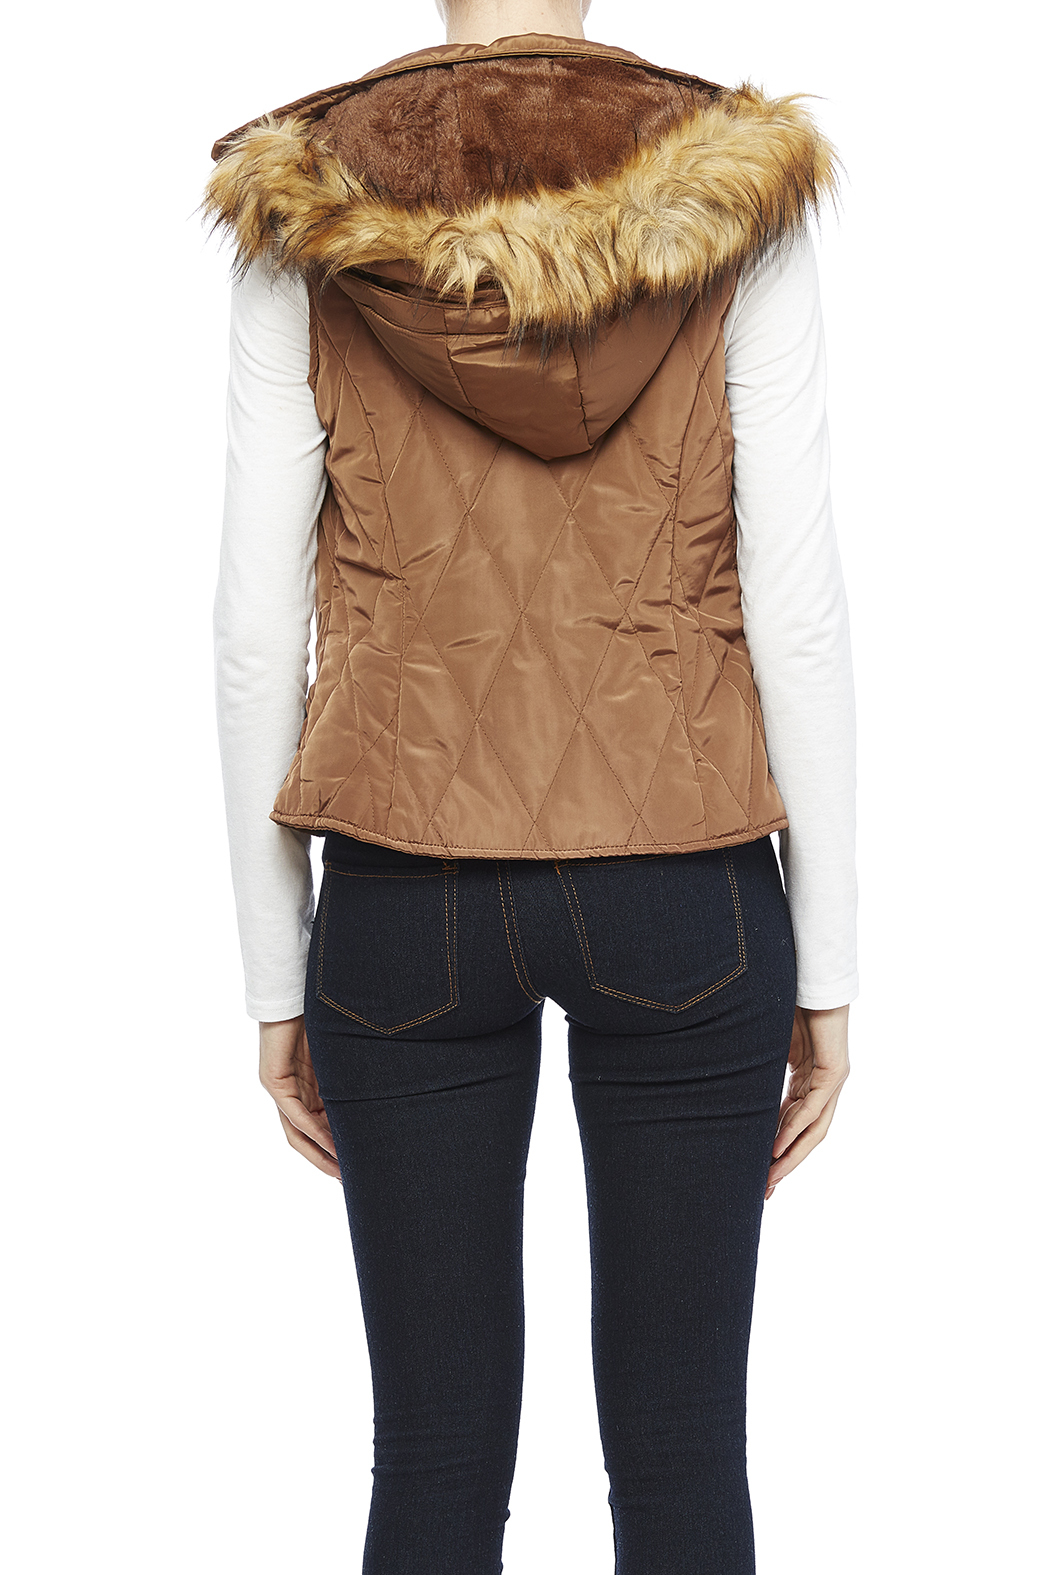 Shop for Nine West Women's Faux Fur Lined Vest. Free Shipping on orders over $45 at truedfil3gz.gq - Your Online Women's Clothing Destination! Get 5% in rewards with Club O! -